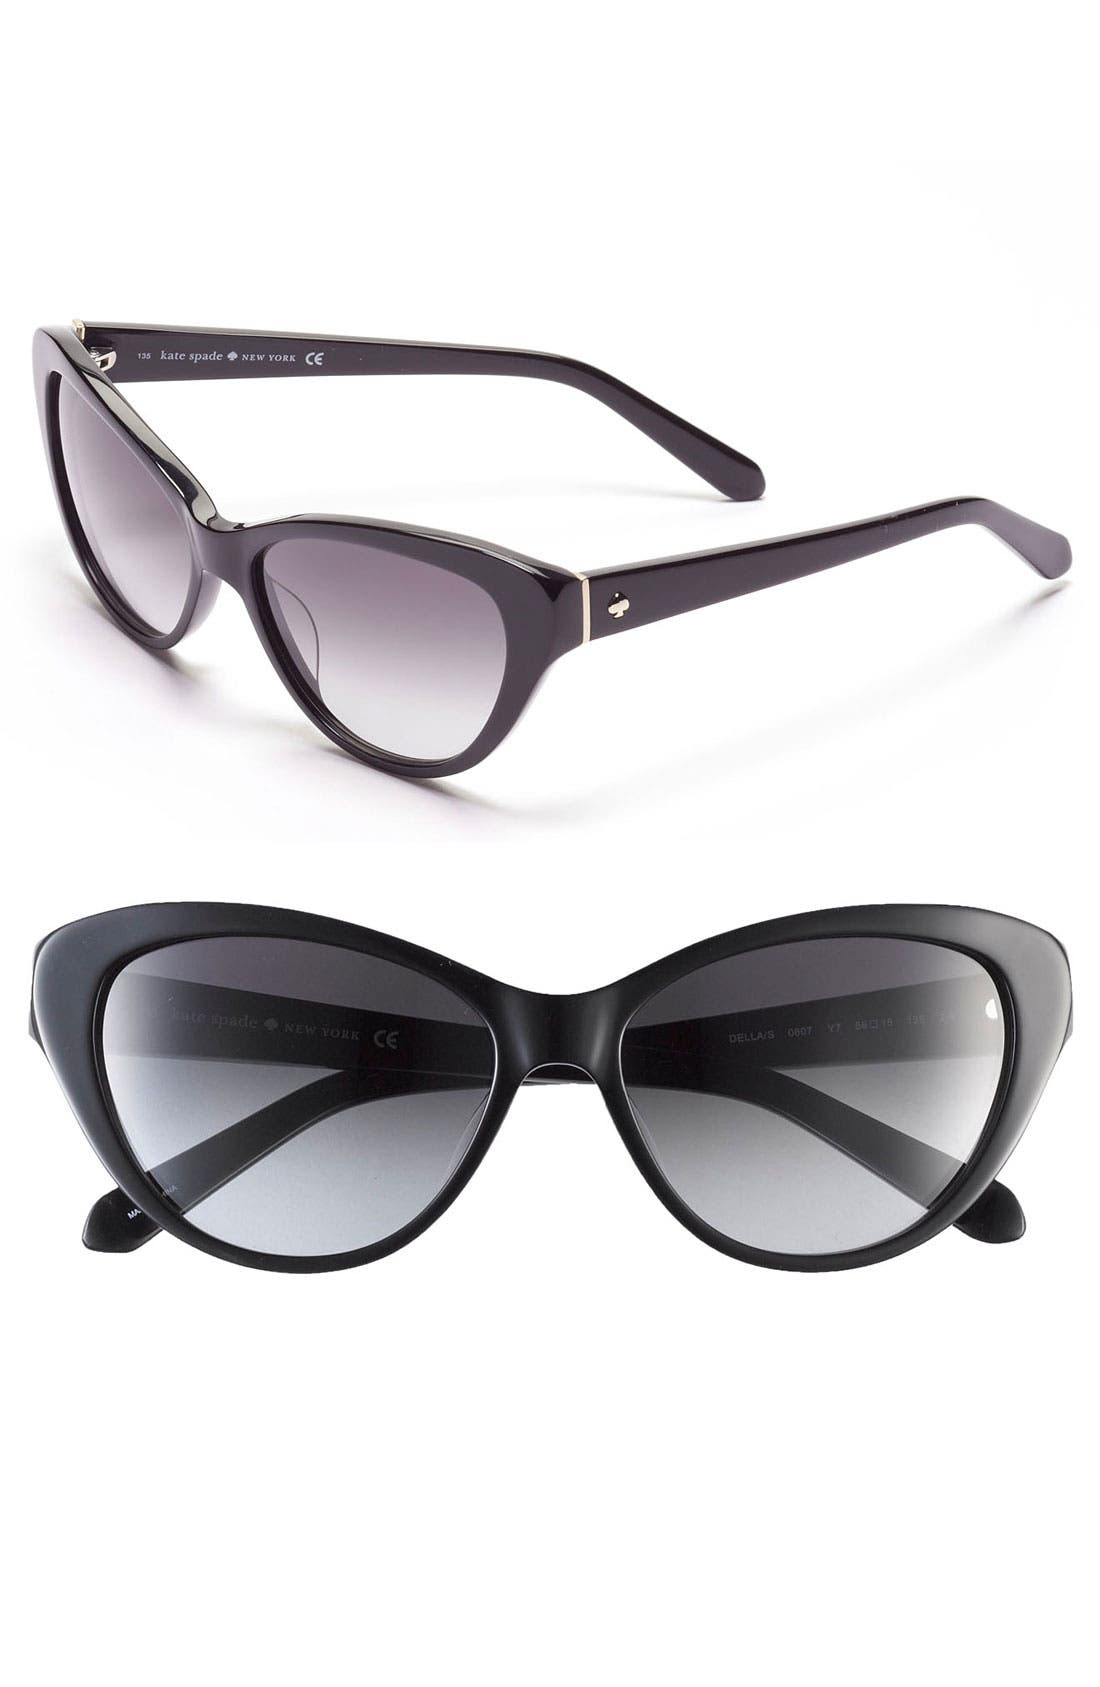 Main Image - kate spade new york 'della' 55mm sunglasses